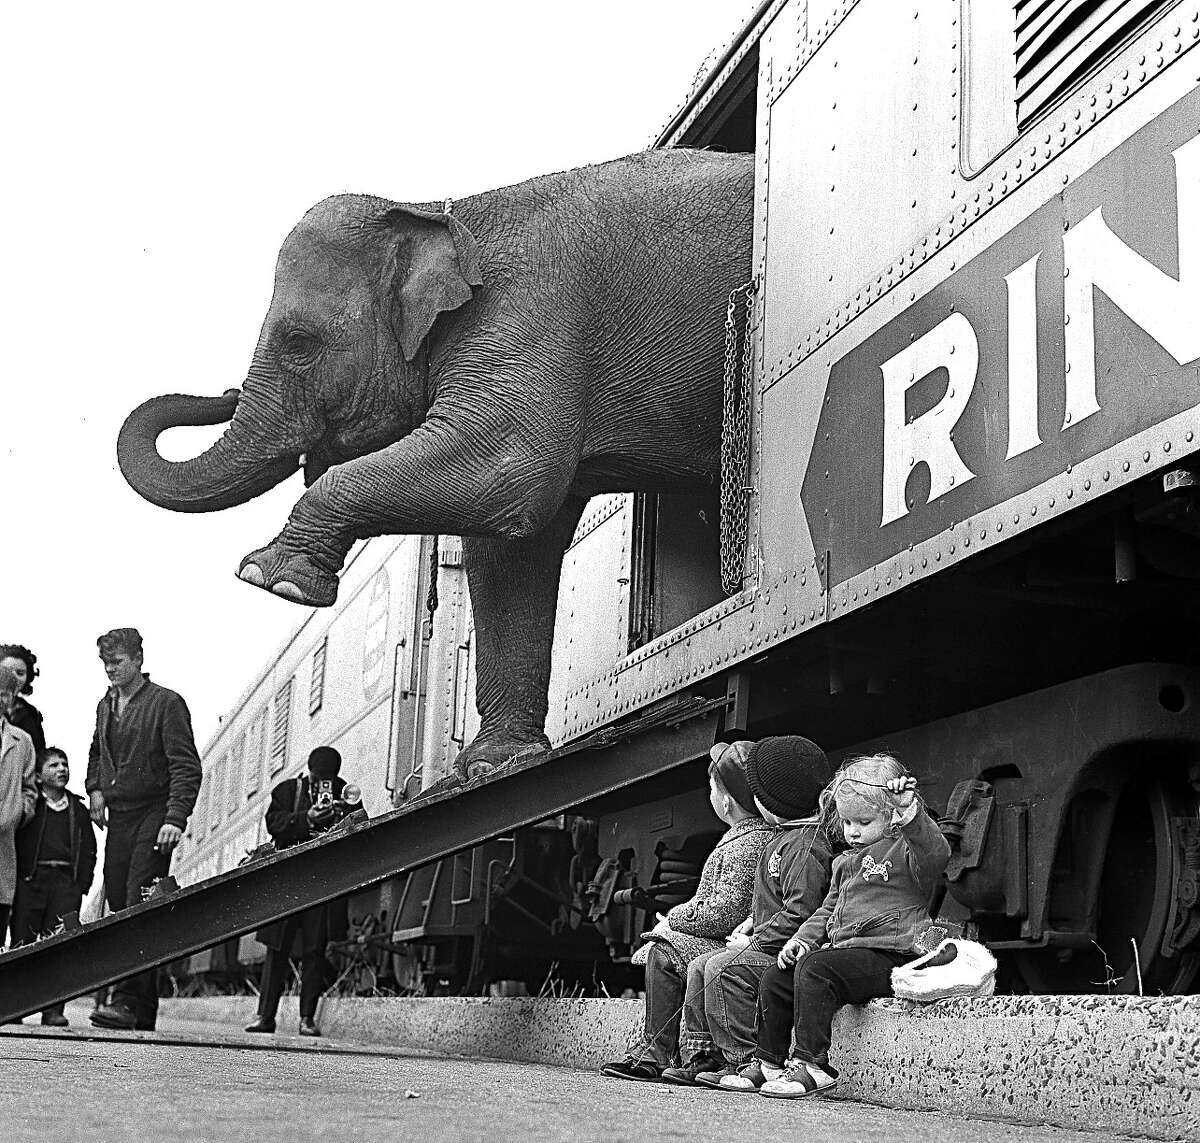 In this April 1, 1963, file photo, a Ringling Bros. Circus elephant walks out of a train car as young children watch in the Bronx railroad yard in New York. The Ringling Bros. and Barnum & Bailey Circus is drawing to a close this month, May 2017, after 146 years of performances and travel.